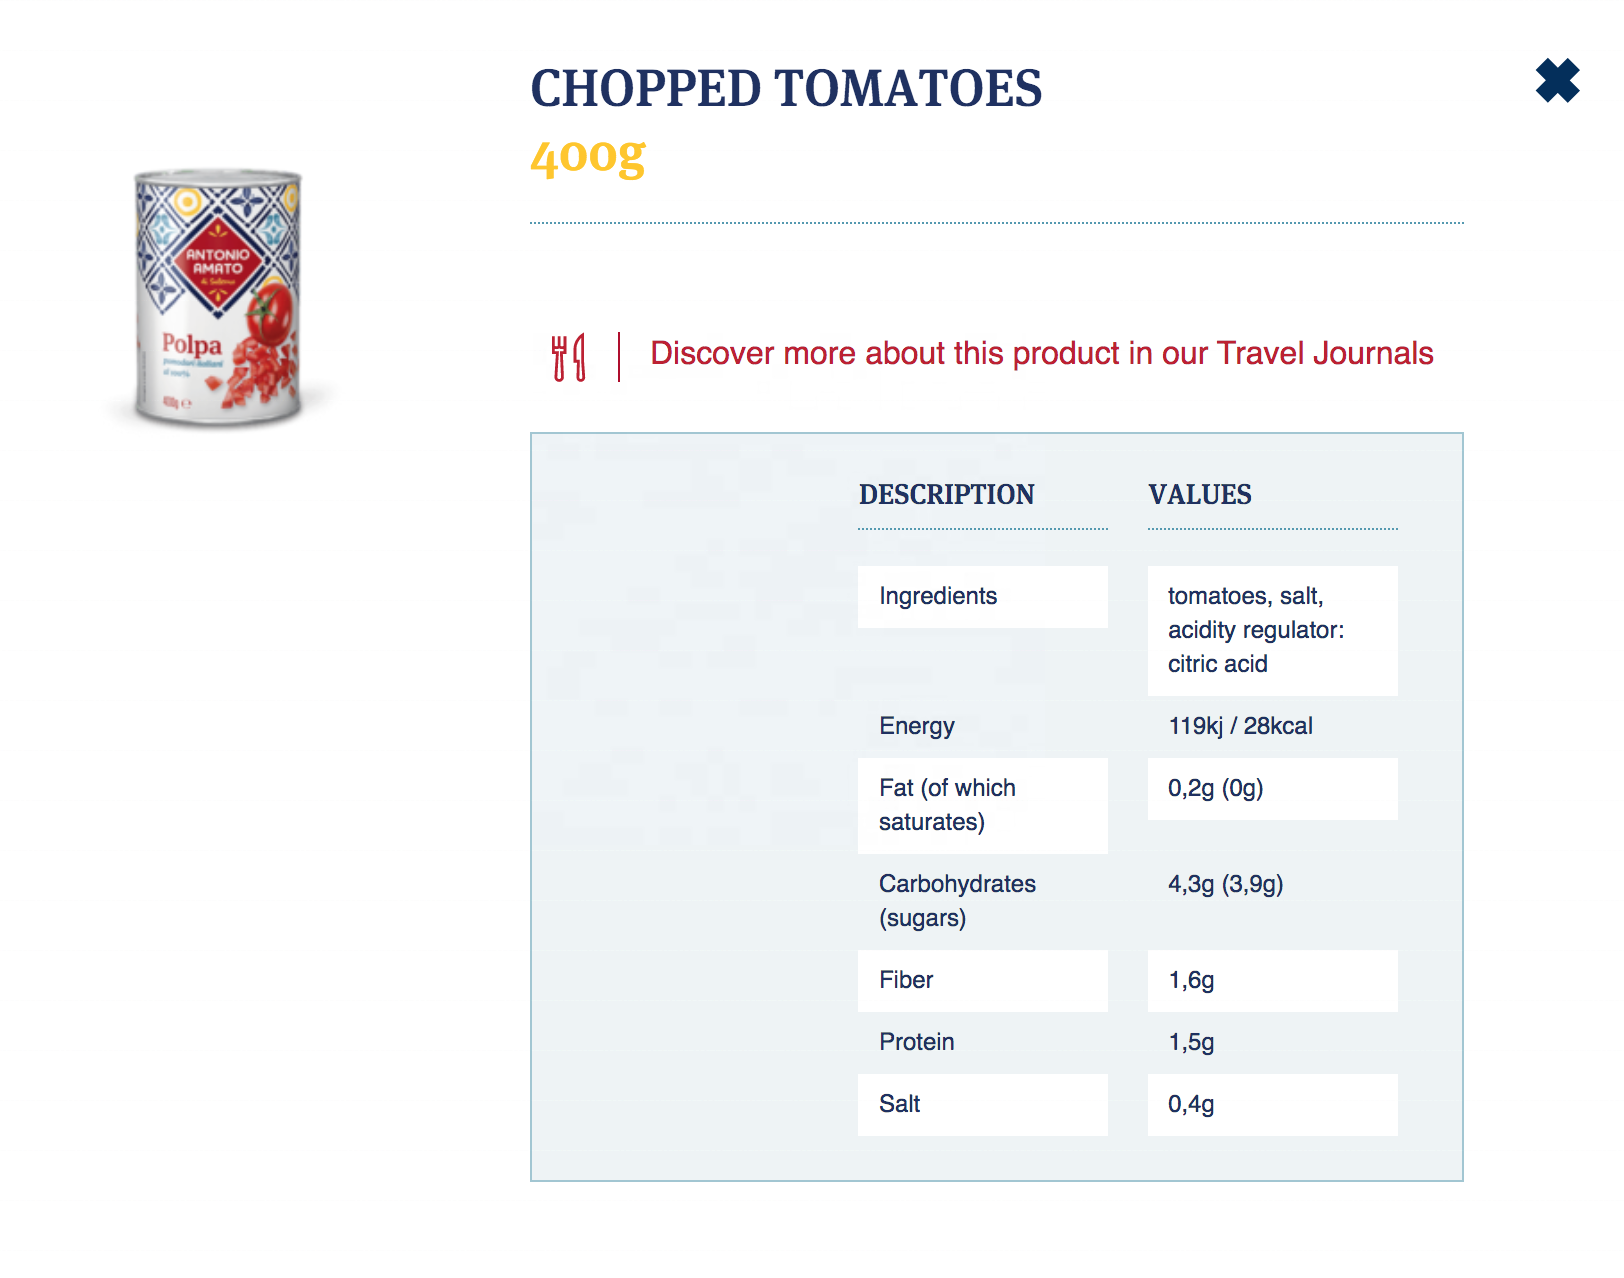 400g Canned Chopped Tomatoes Giuseppe Verdi Selection Vegetables made Italy